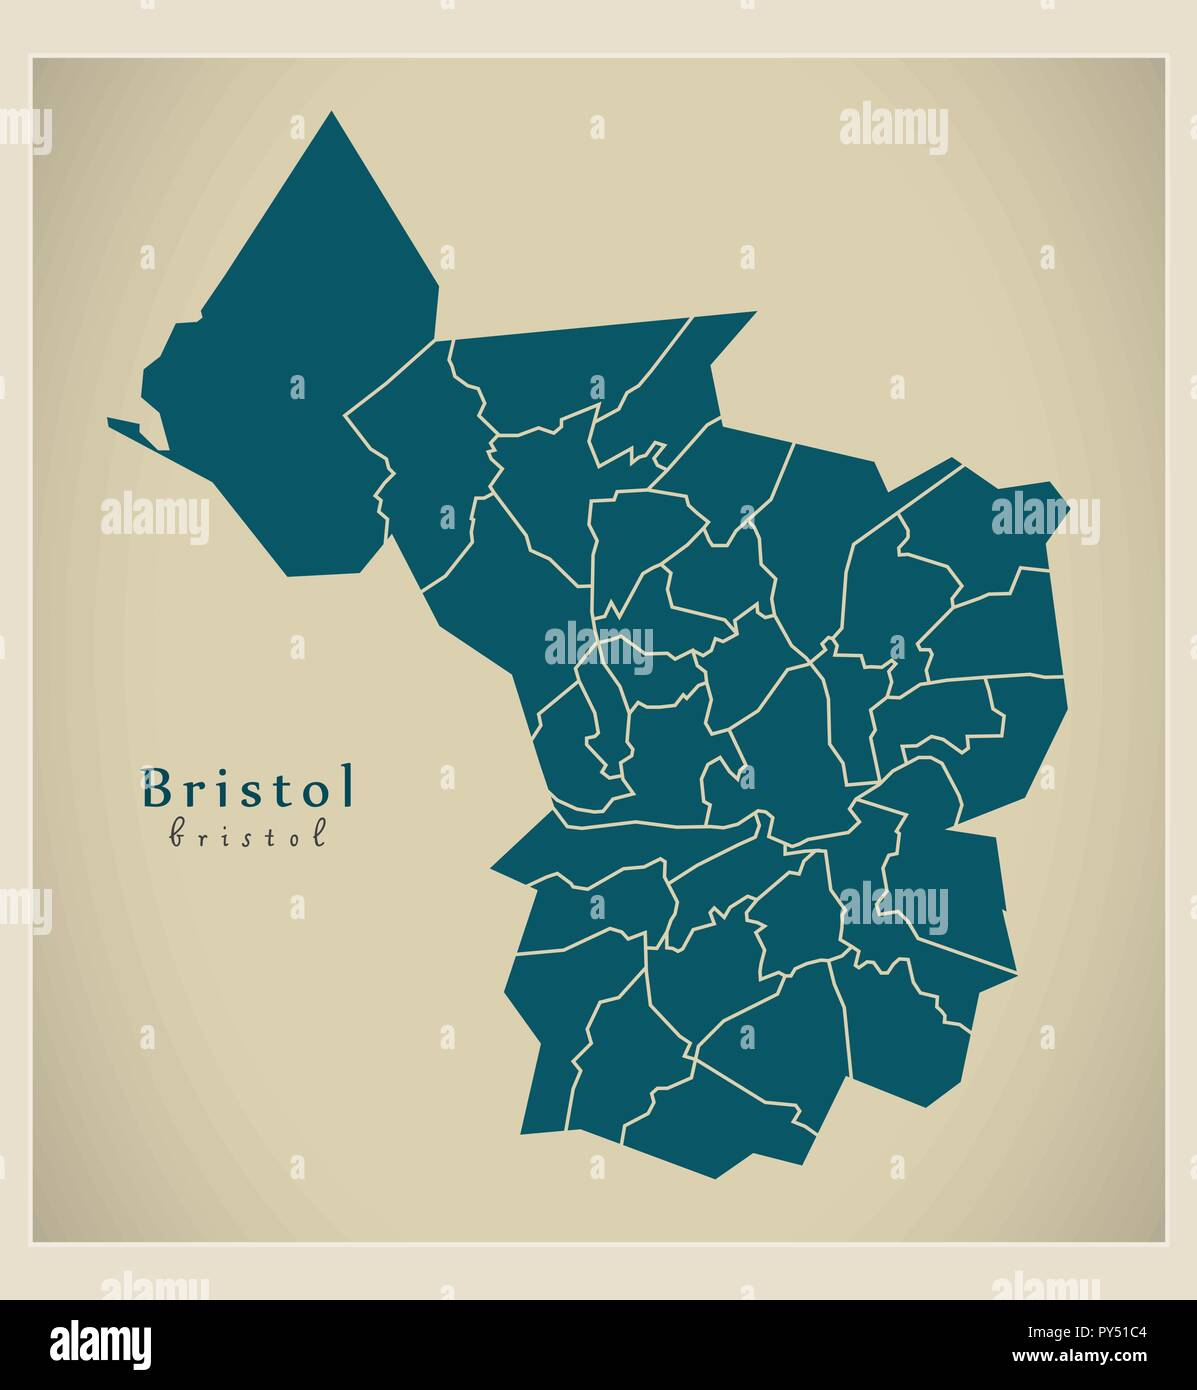 City Map Of England.Modern City Map Bristol City Of England With Wards Uk Stock Vector